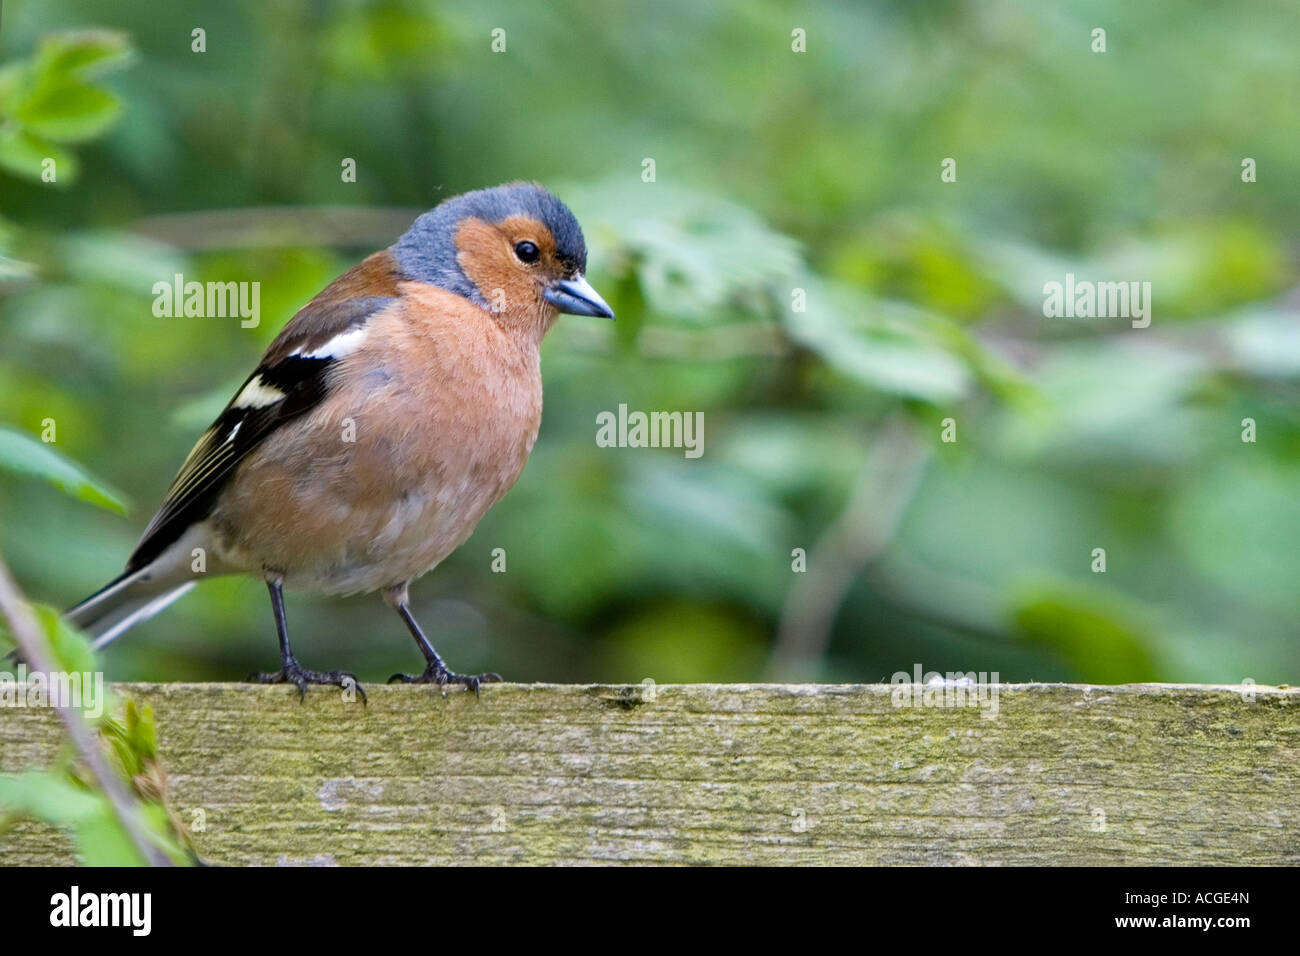 Fringilla Coelebs.  Male chaffinch sitting on a wooden fence against green blurred foliage - Stock Image